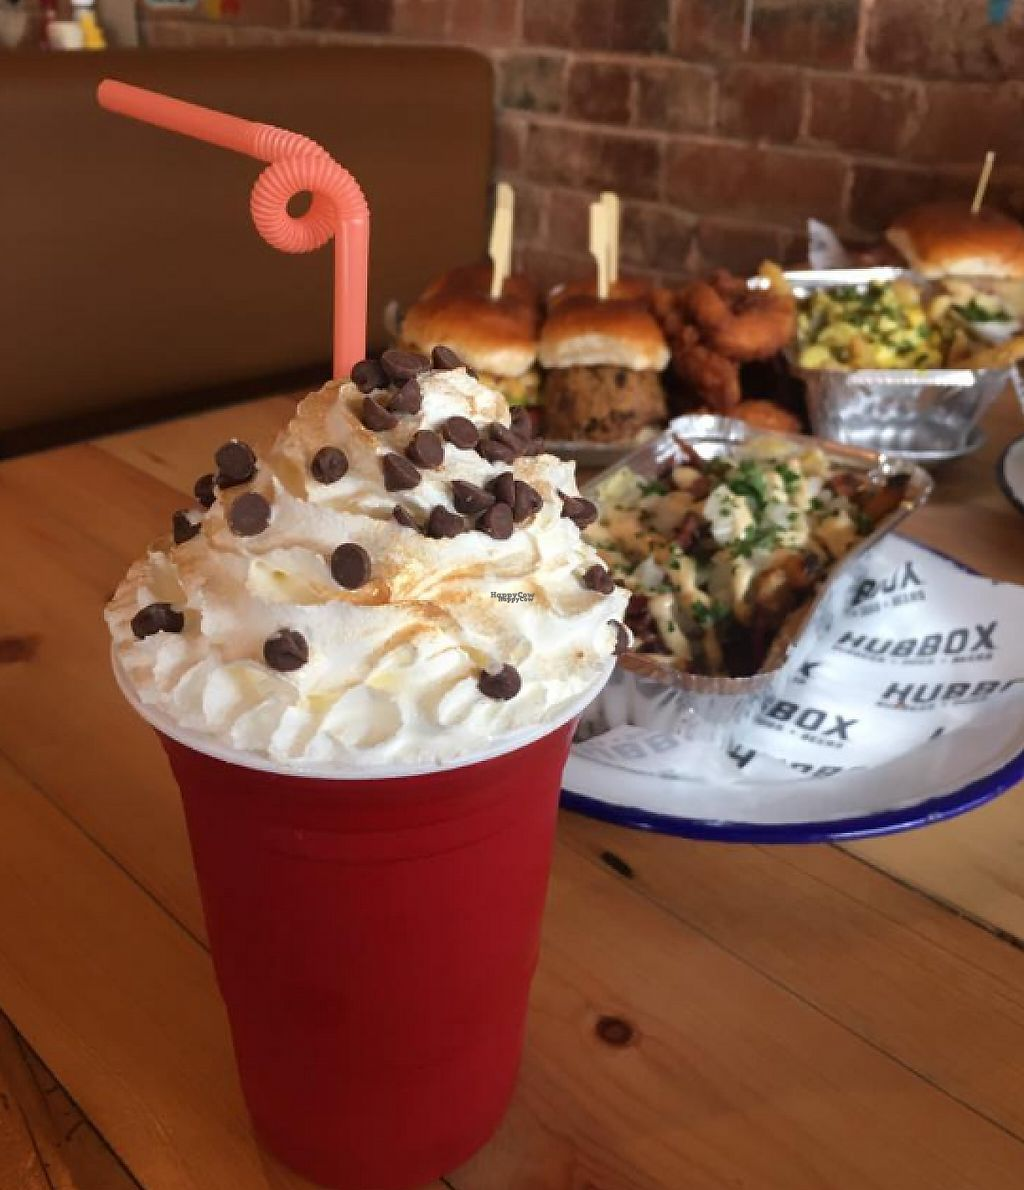 """Photo of Hubbox  by <a href=""""/members/profile/community"""">community</a> <br/>White Chocolate Malt Shake <br/> March 13, 2017  - <a href='/contact/abuse/image/79709/235852'>Report</a>"""